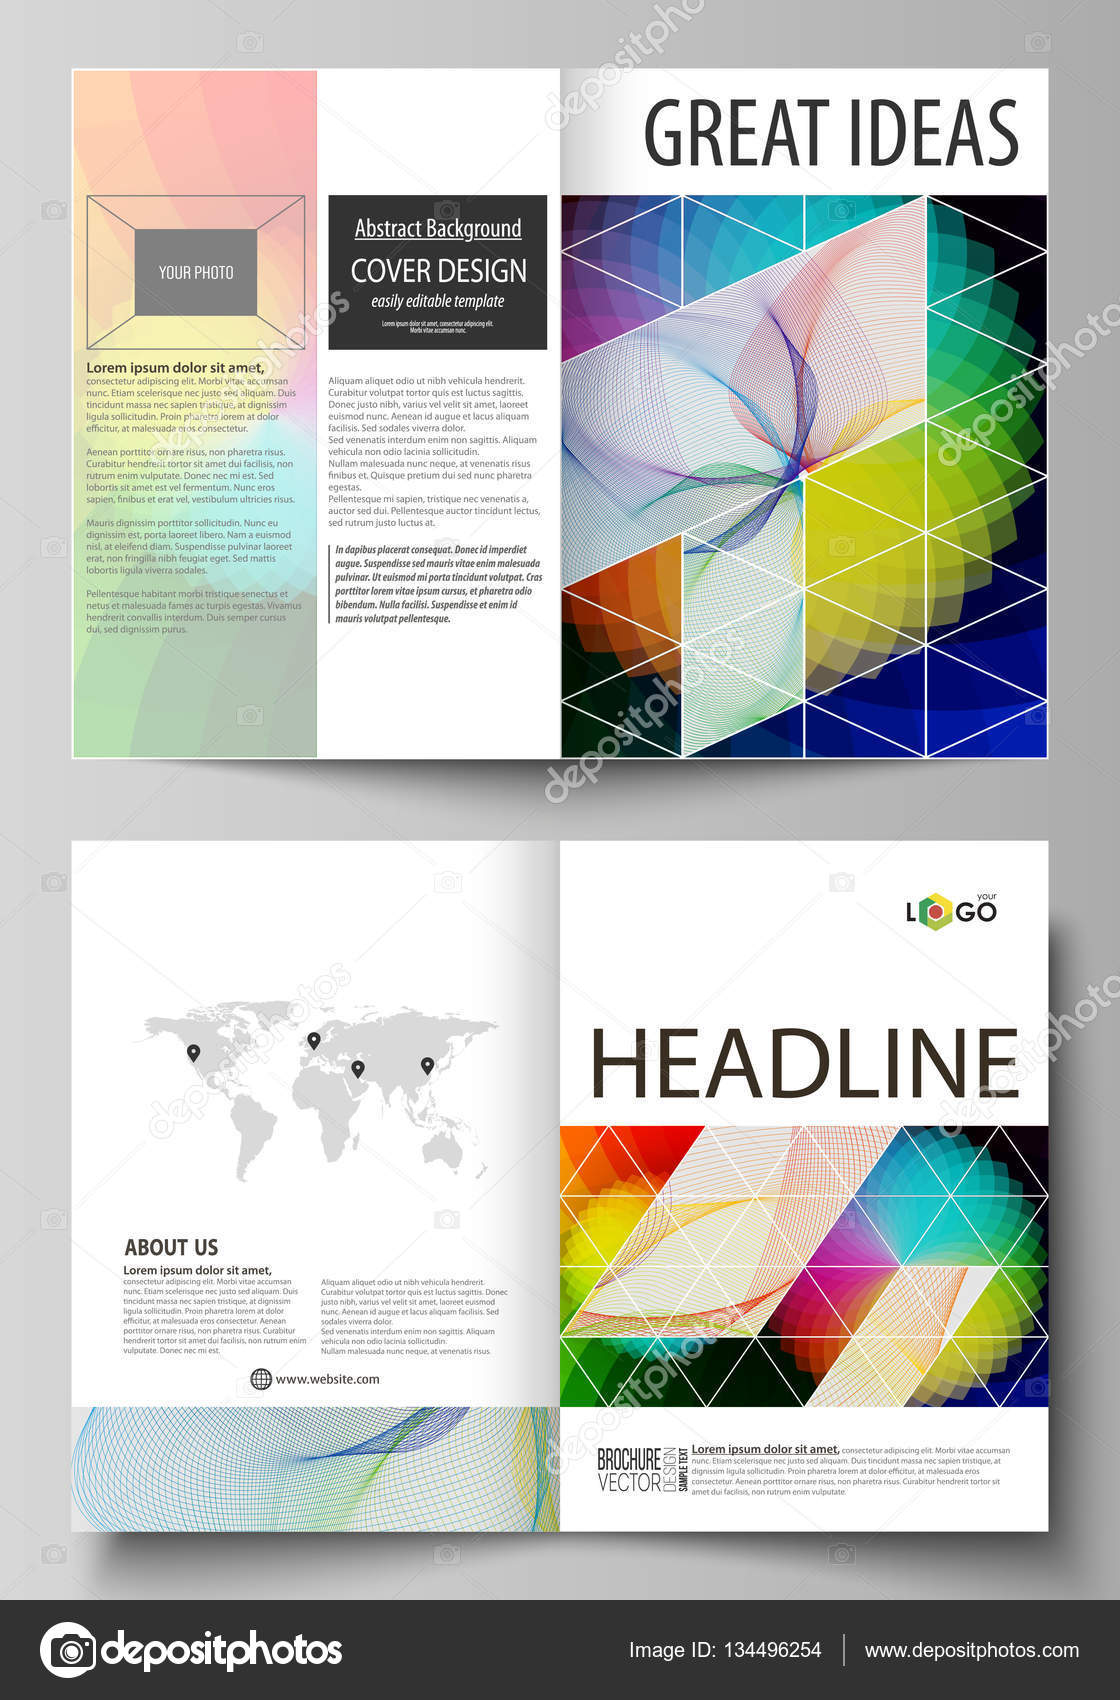 business templates for bi fold brochure flyer booklet report business templates for bi fold brochure flyer booklet report cover template vector layout in a4 size colorful design overlapping geometric shapes and